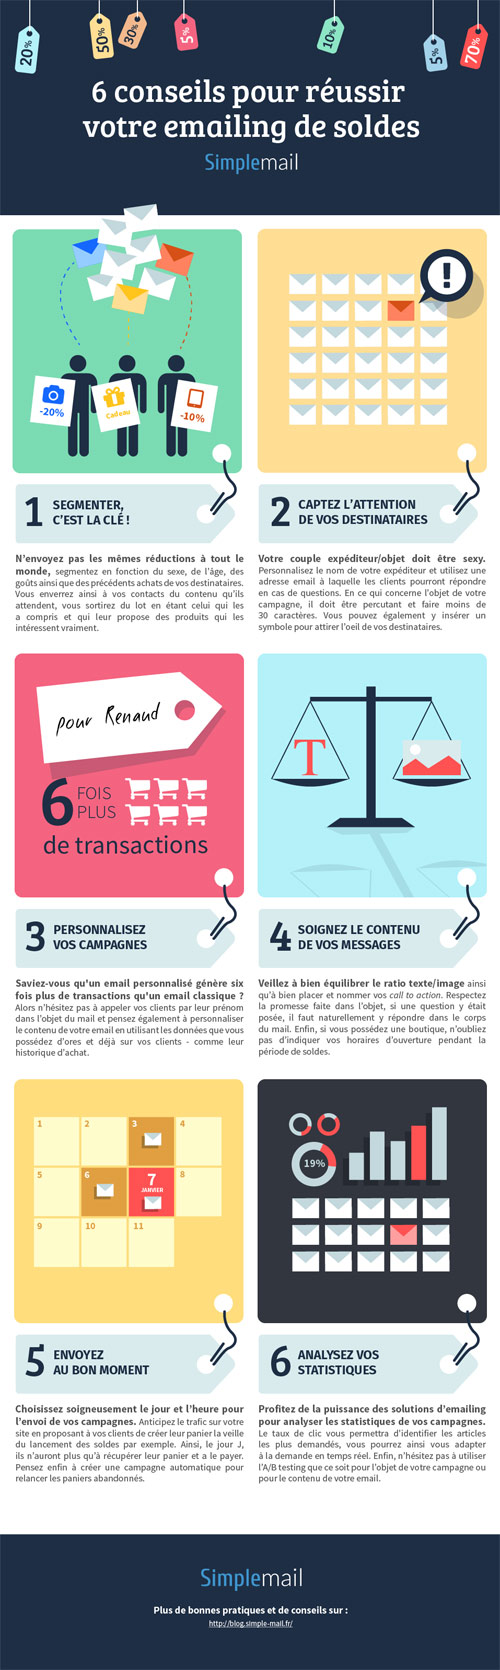 Infographie SimpleMail